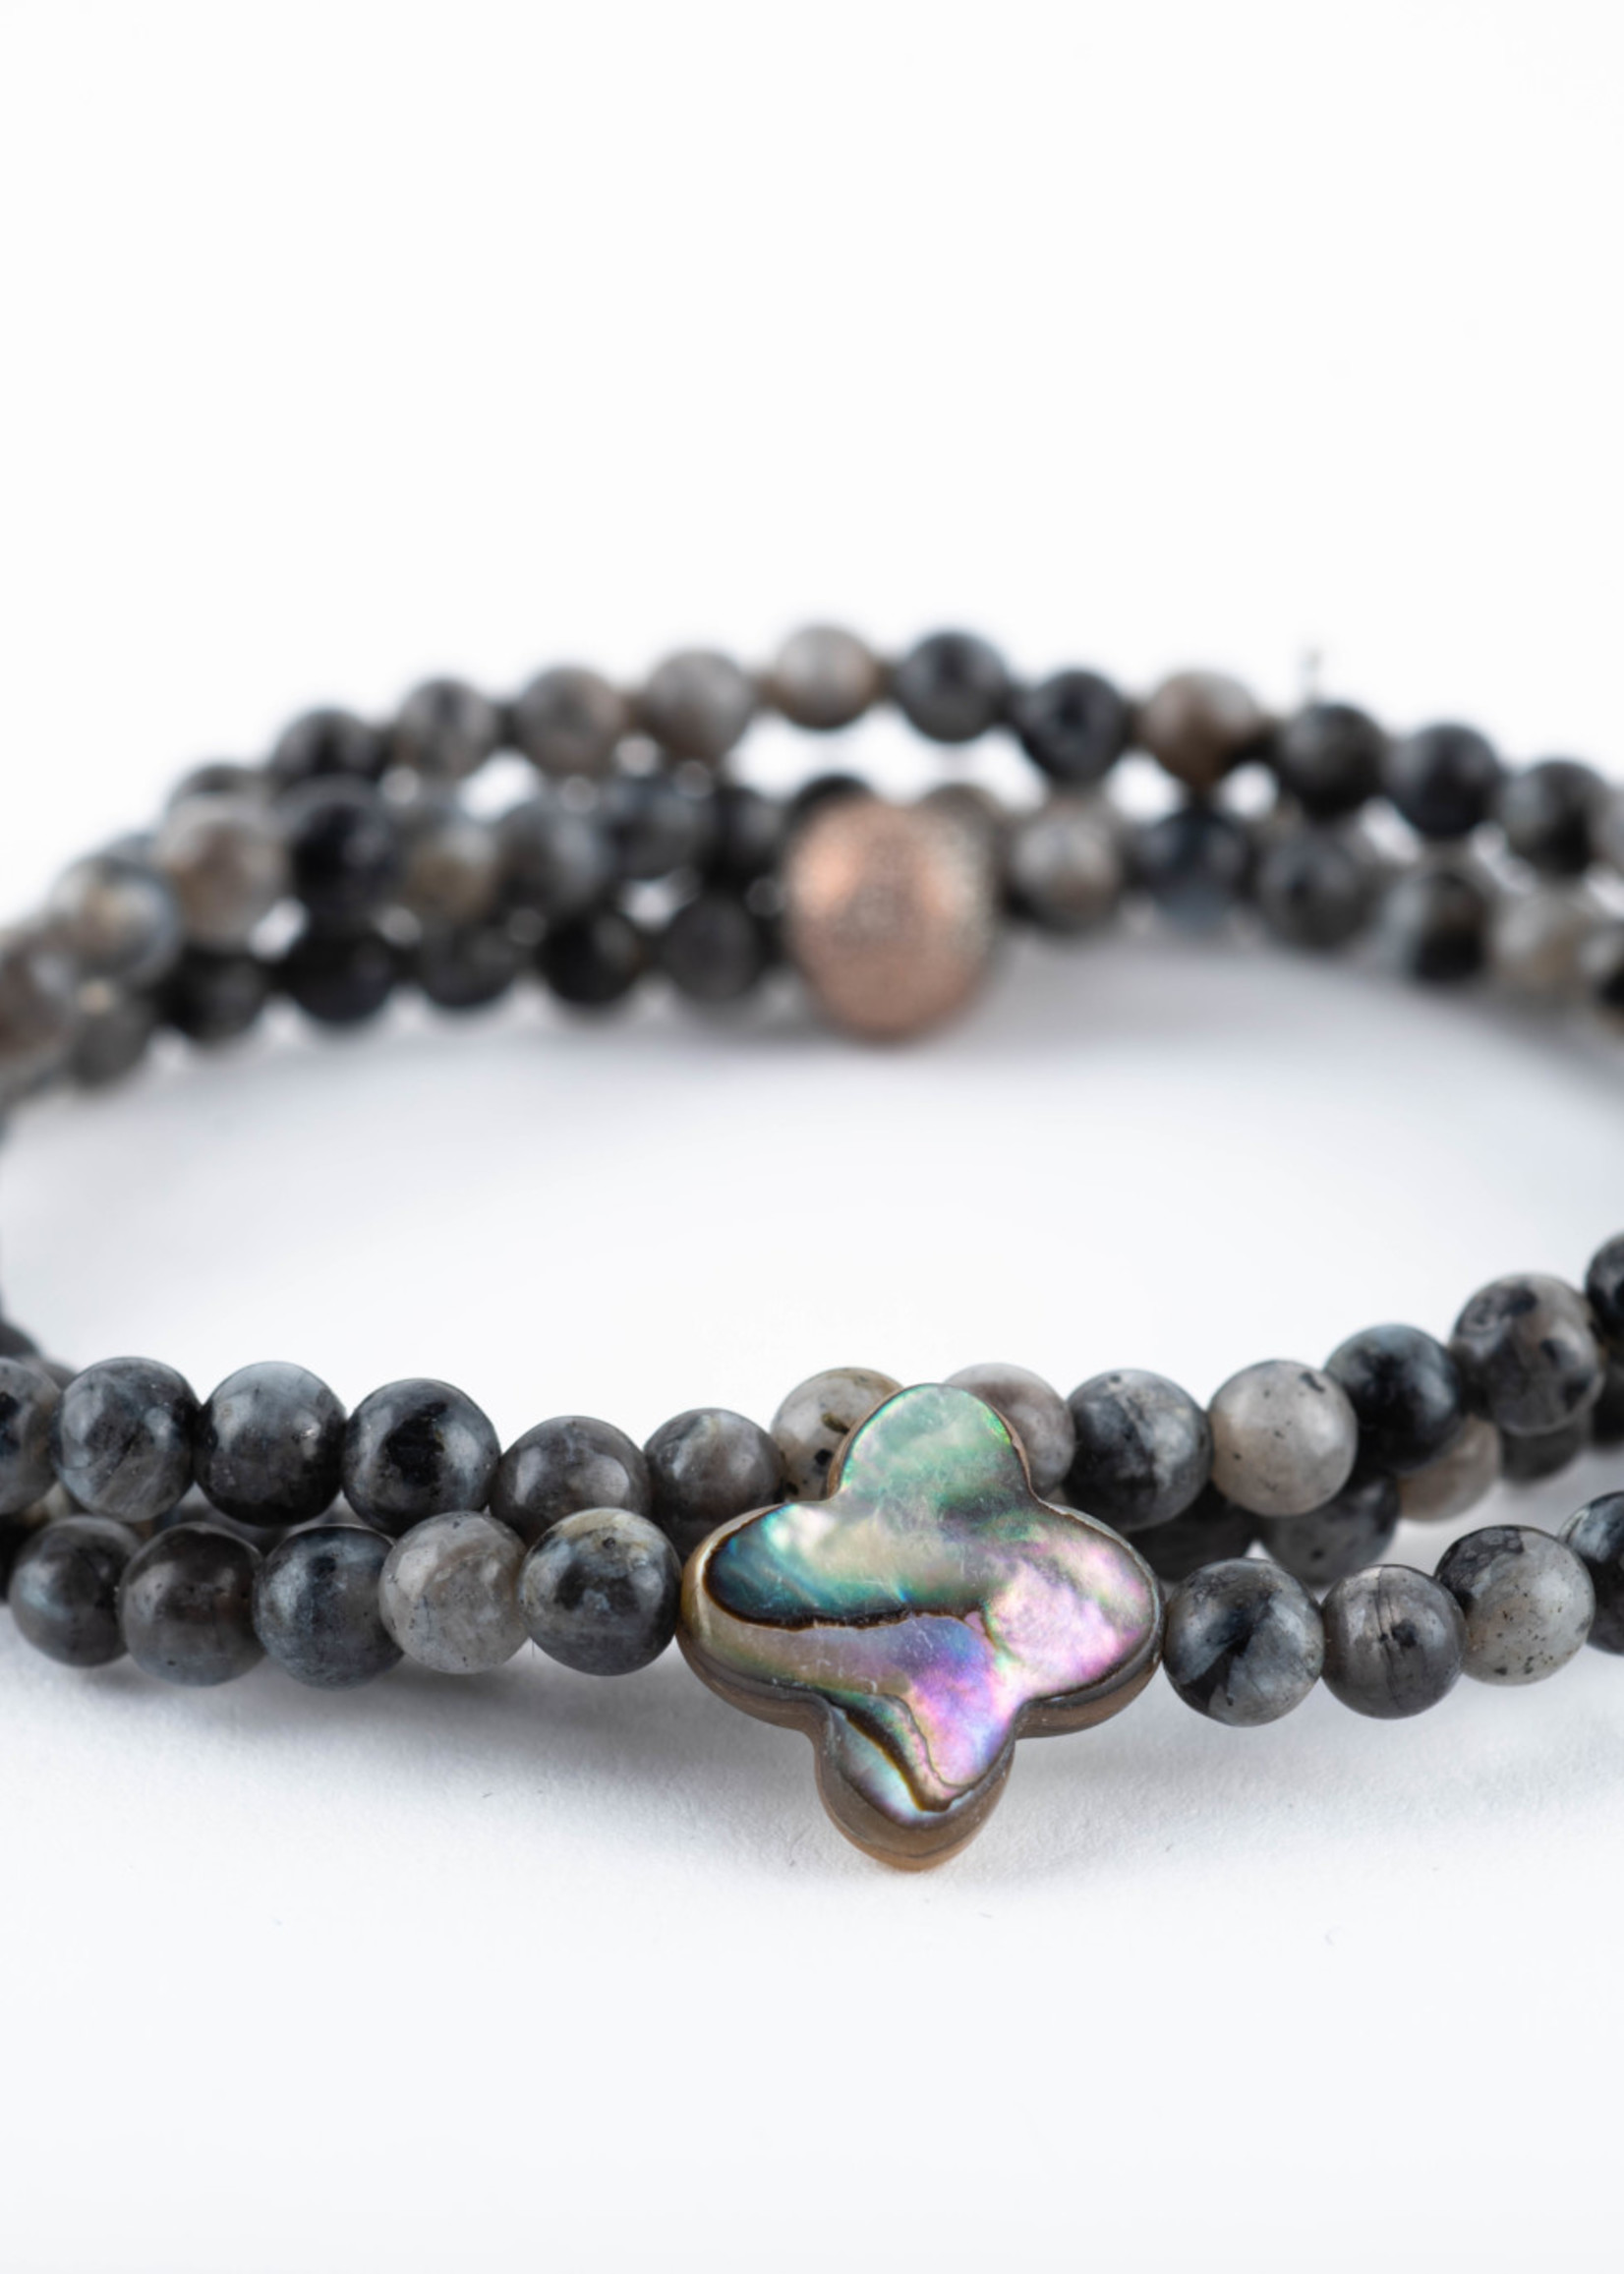 Mina Danielle Small Black Labradorite Wrap with Clover Shaped Mother of Pearl